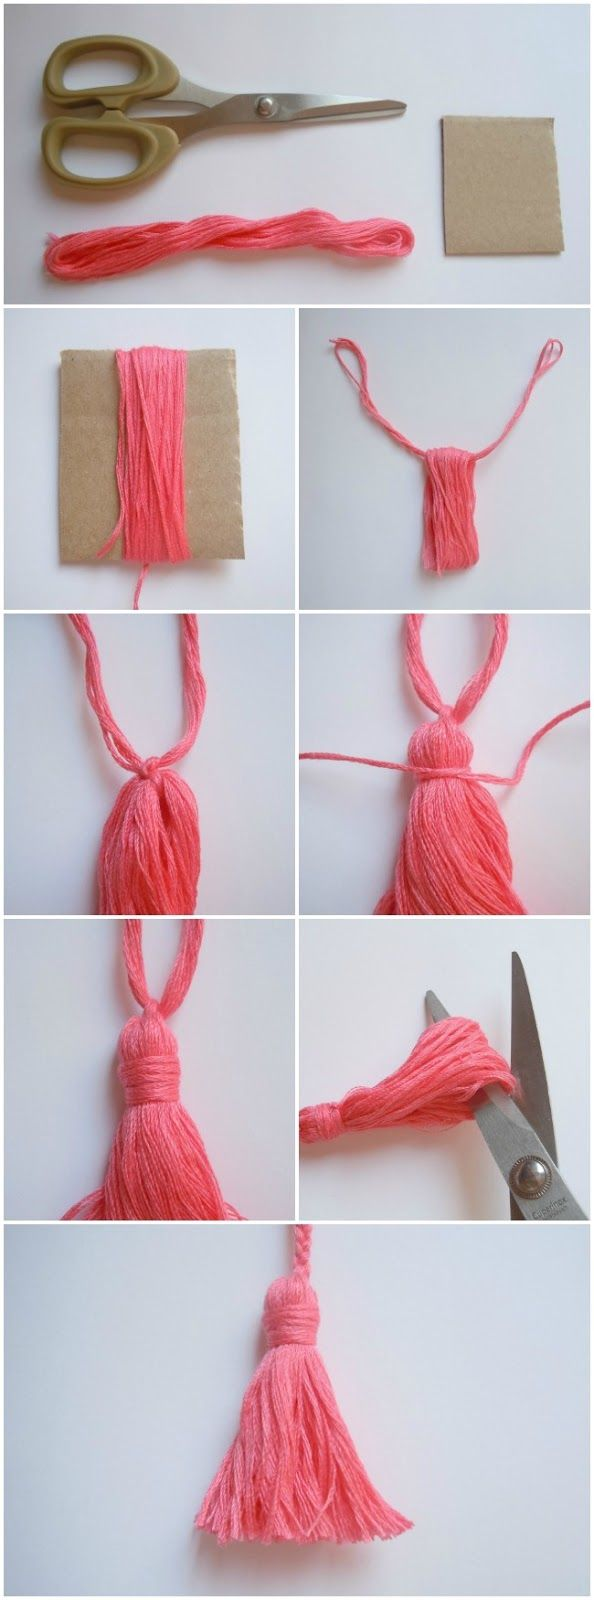 How to make tassels